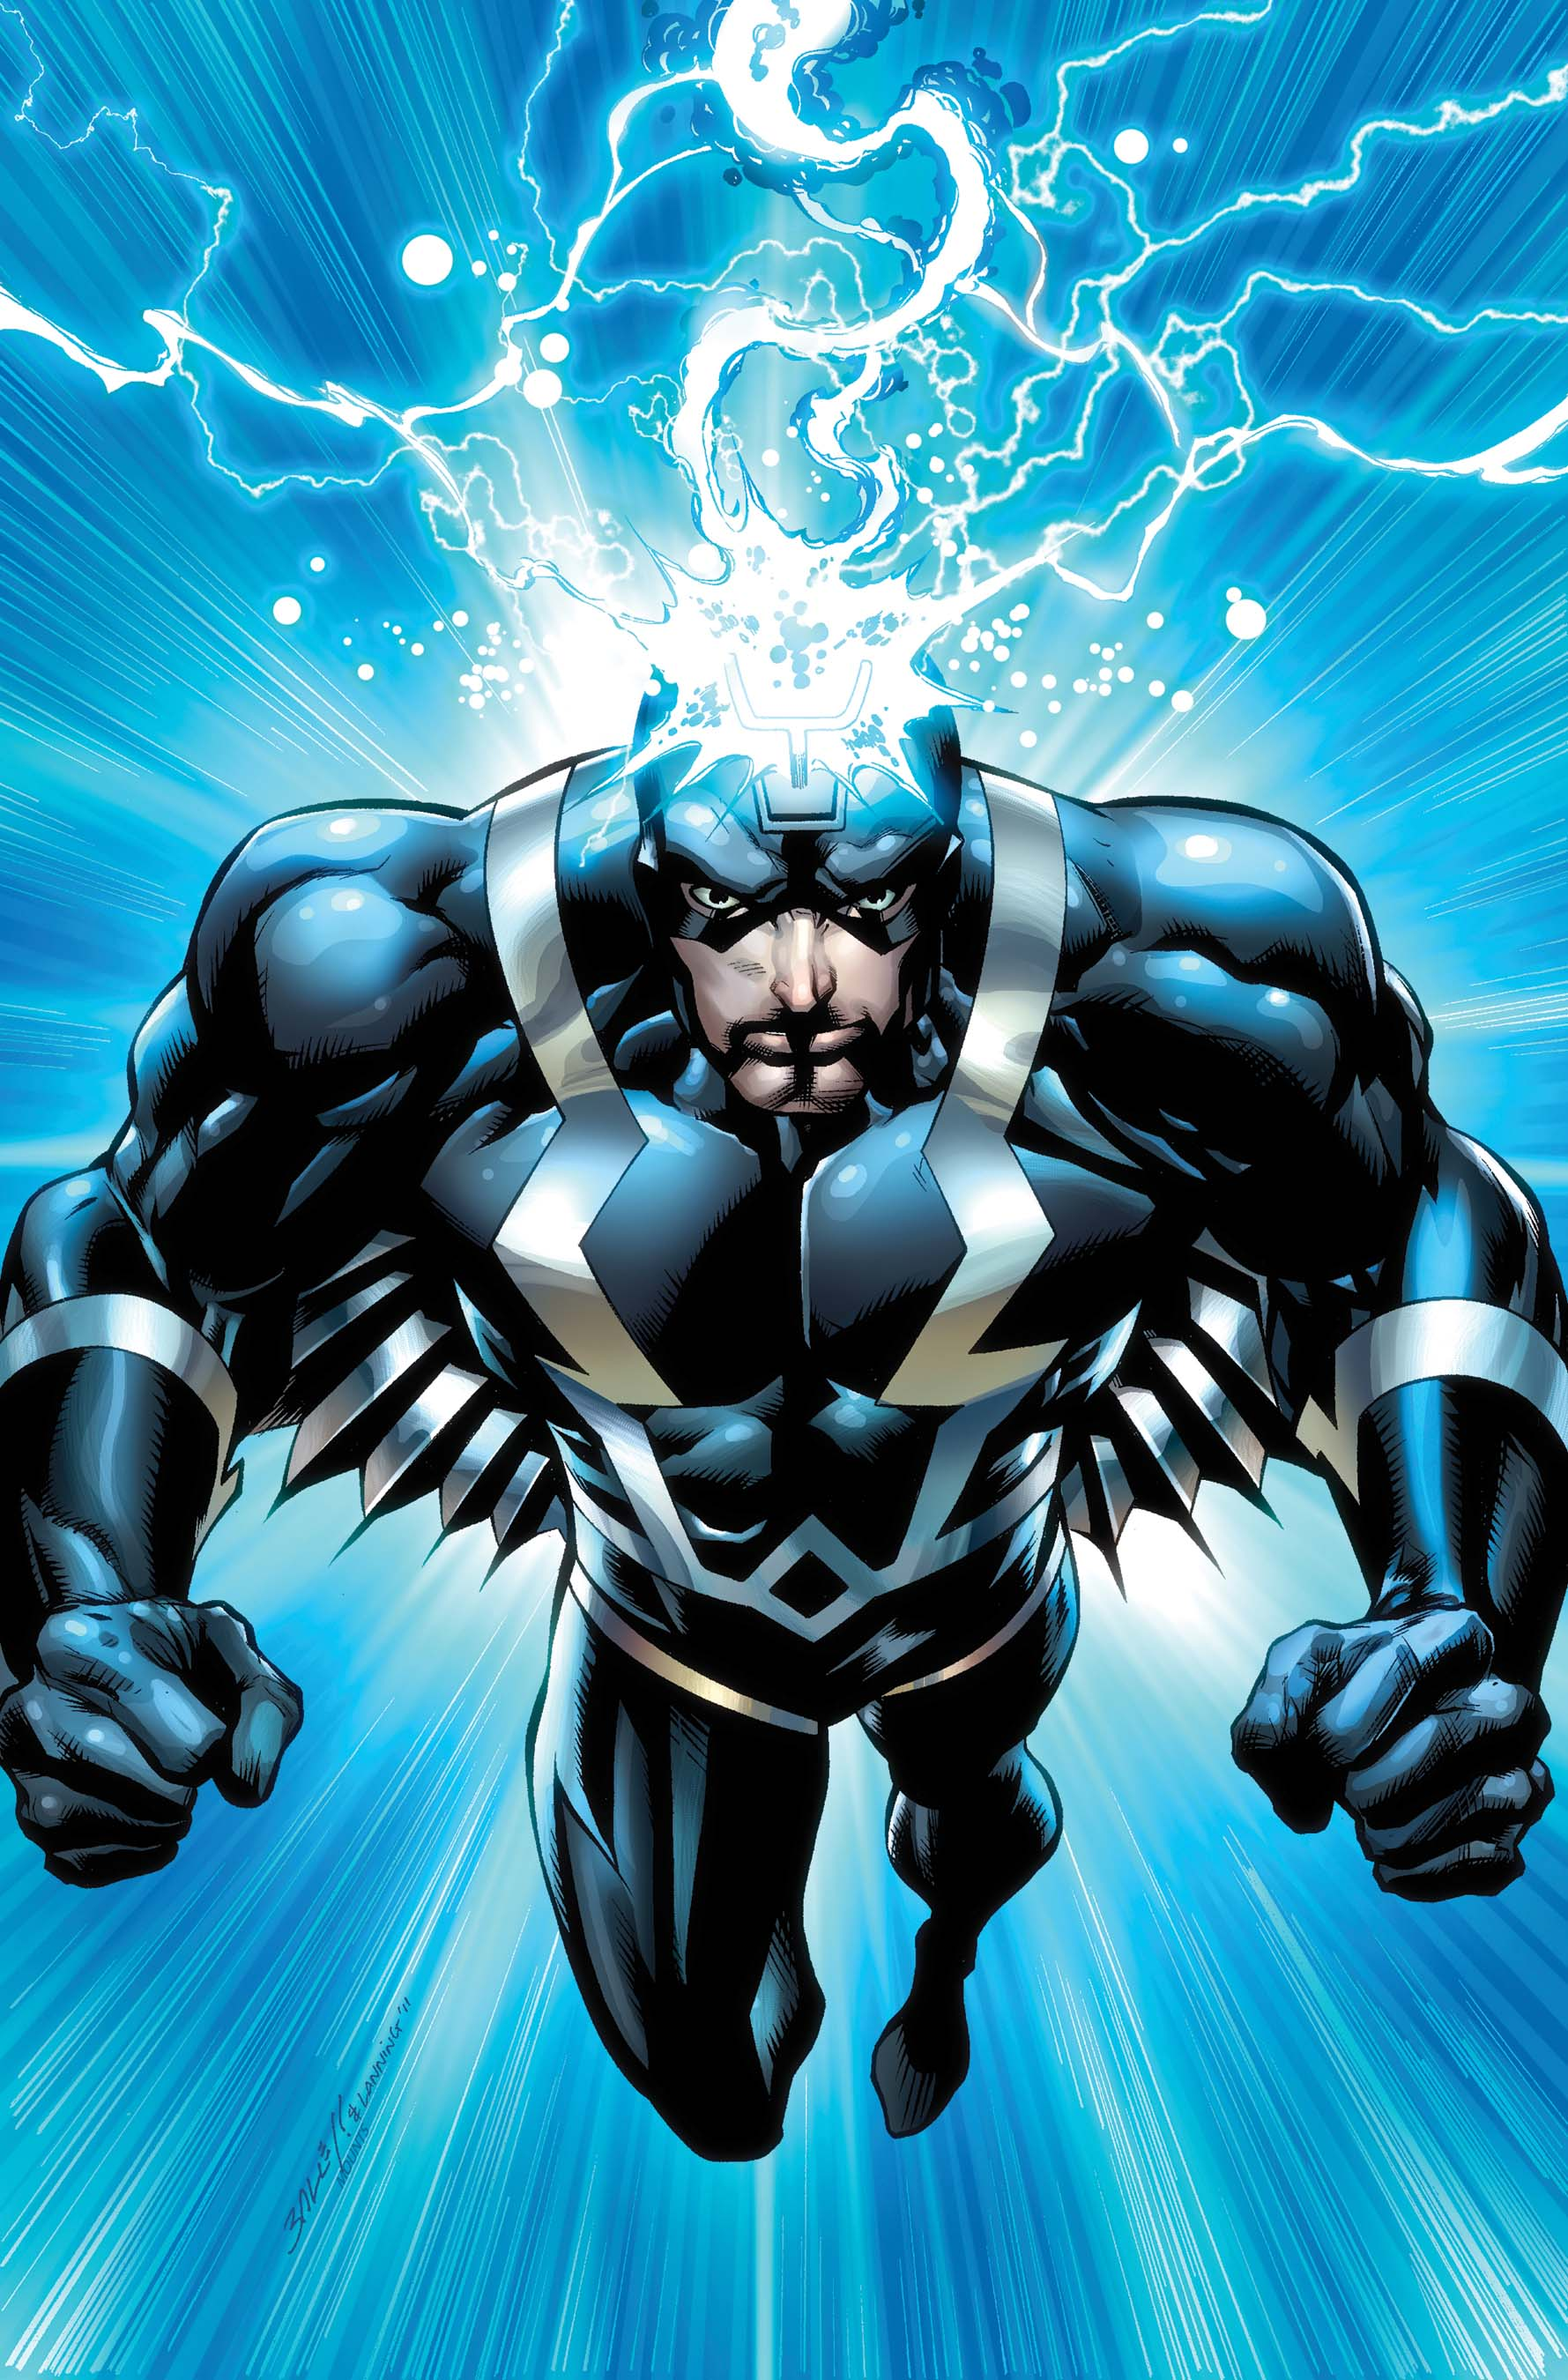 6. The fork-like antenna worn upon his forehead helps Black Bolt control his power. He can channel his powers inward to increase his strength and speed, and can focus it through the focusing tool or his arms as concussive blasts.  7. Black Bolt is capable of channeling all available energy into one devastating punch called his Master Blow, which renders him extremely vulnerable subsequently.  8. By concentrating his electrons into anti-electrons, he can fly at speeds up to 500 mph for a period of 6 hours, protected by an anti-graviton field.